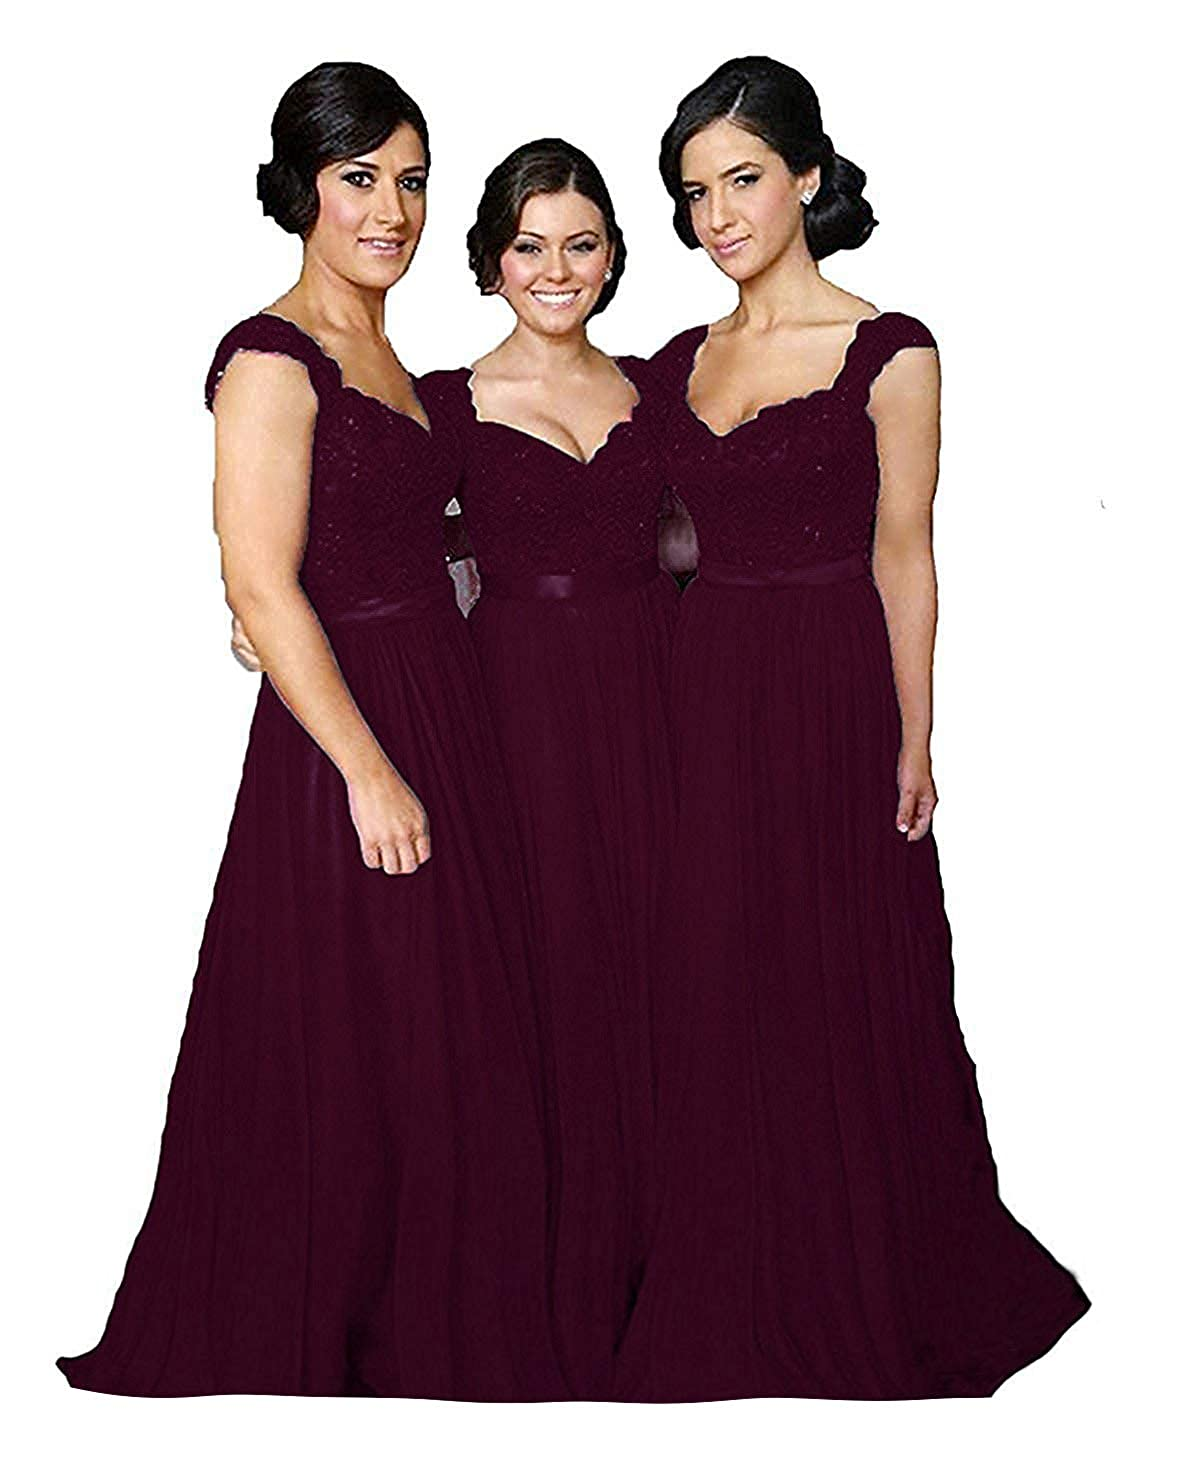 Dark Burgundy Fanciest Women' Cap Sleeve Lace Bridesmaid Dresses Long Wedding Party Gowns